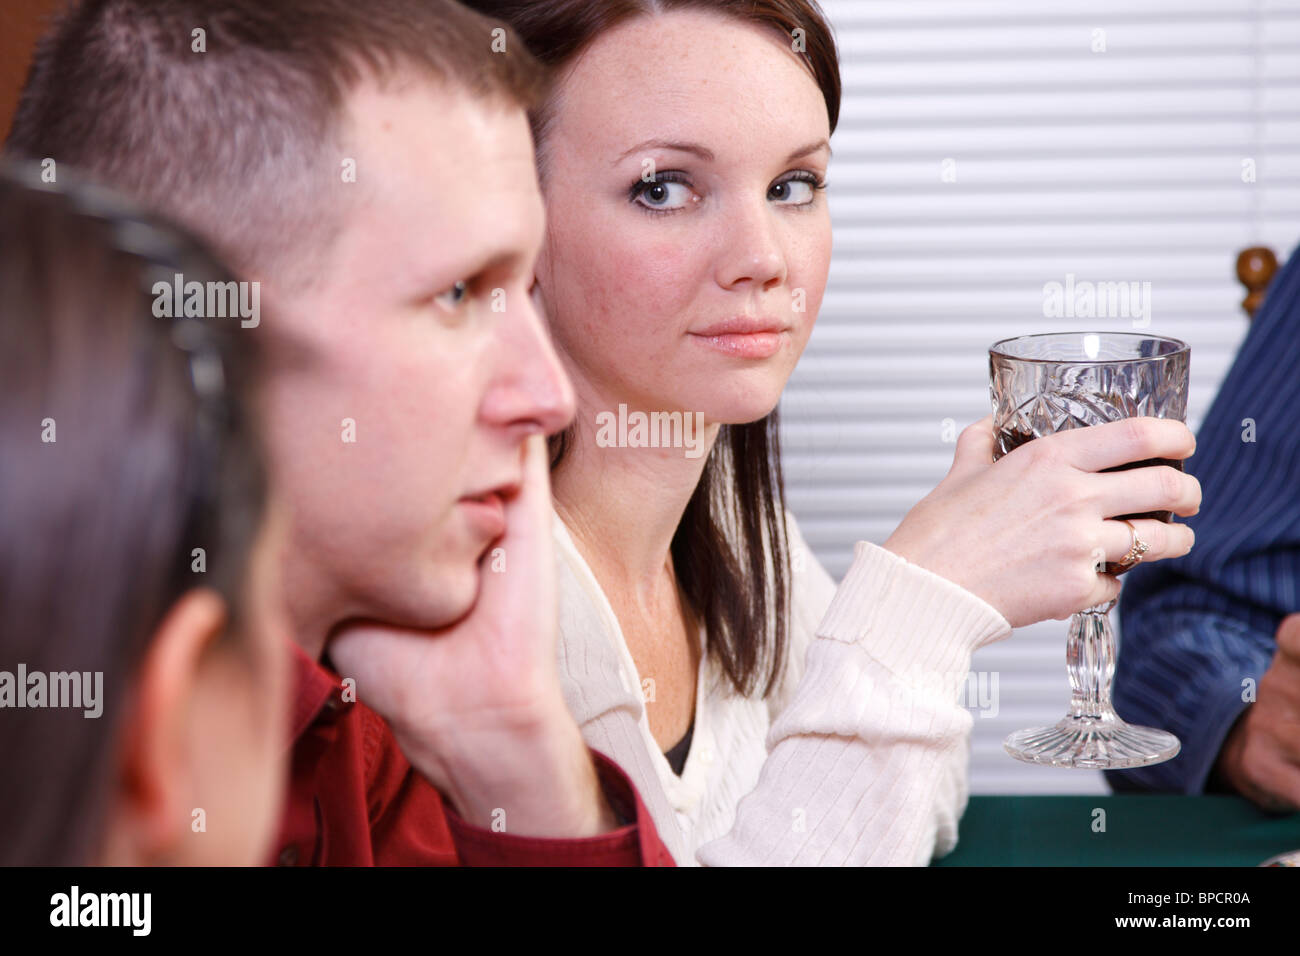 Woman staring unhappily at man during family dinner - Stock Image